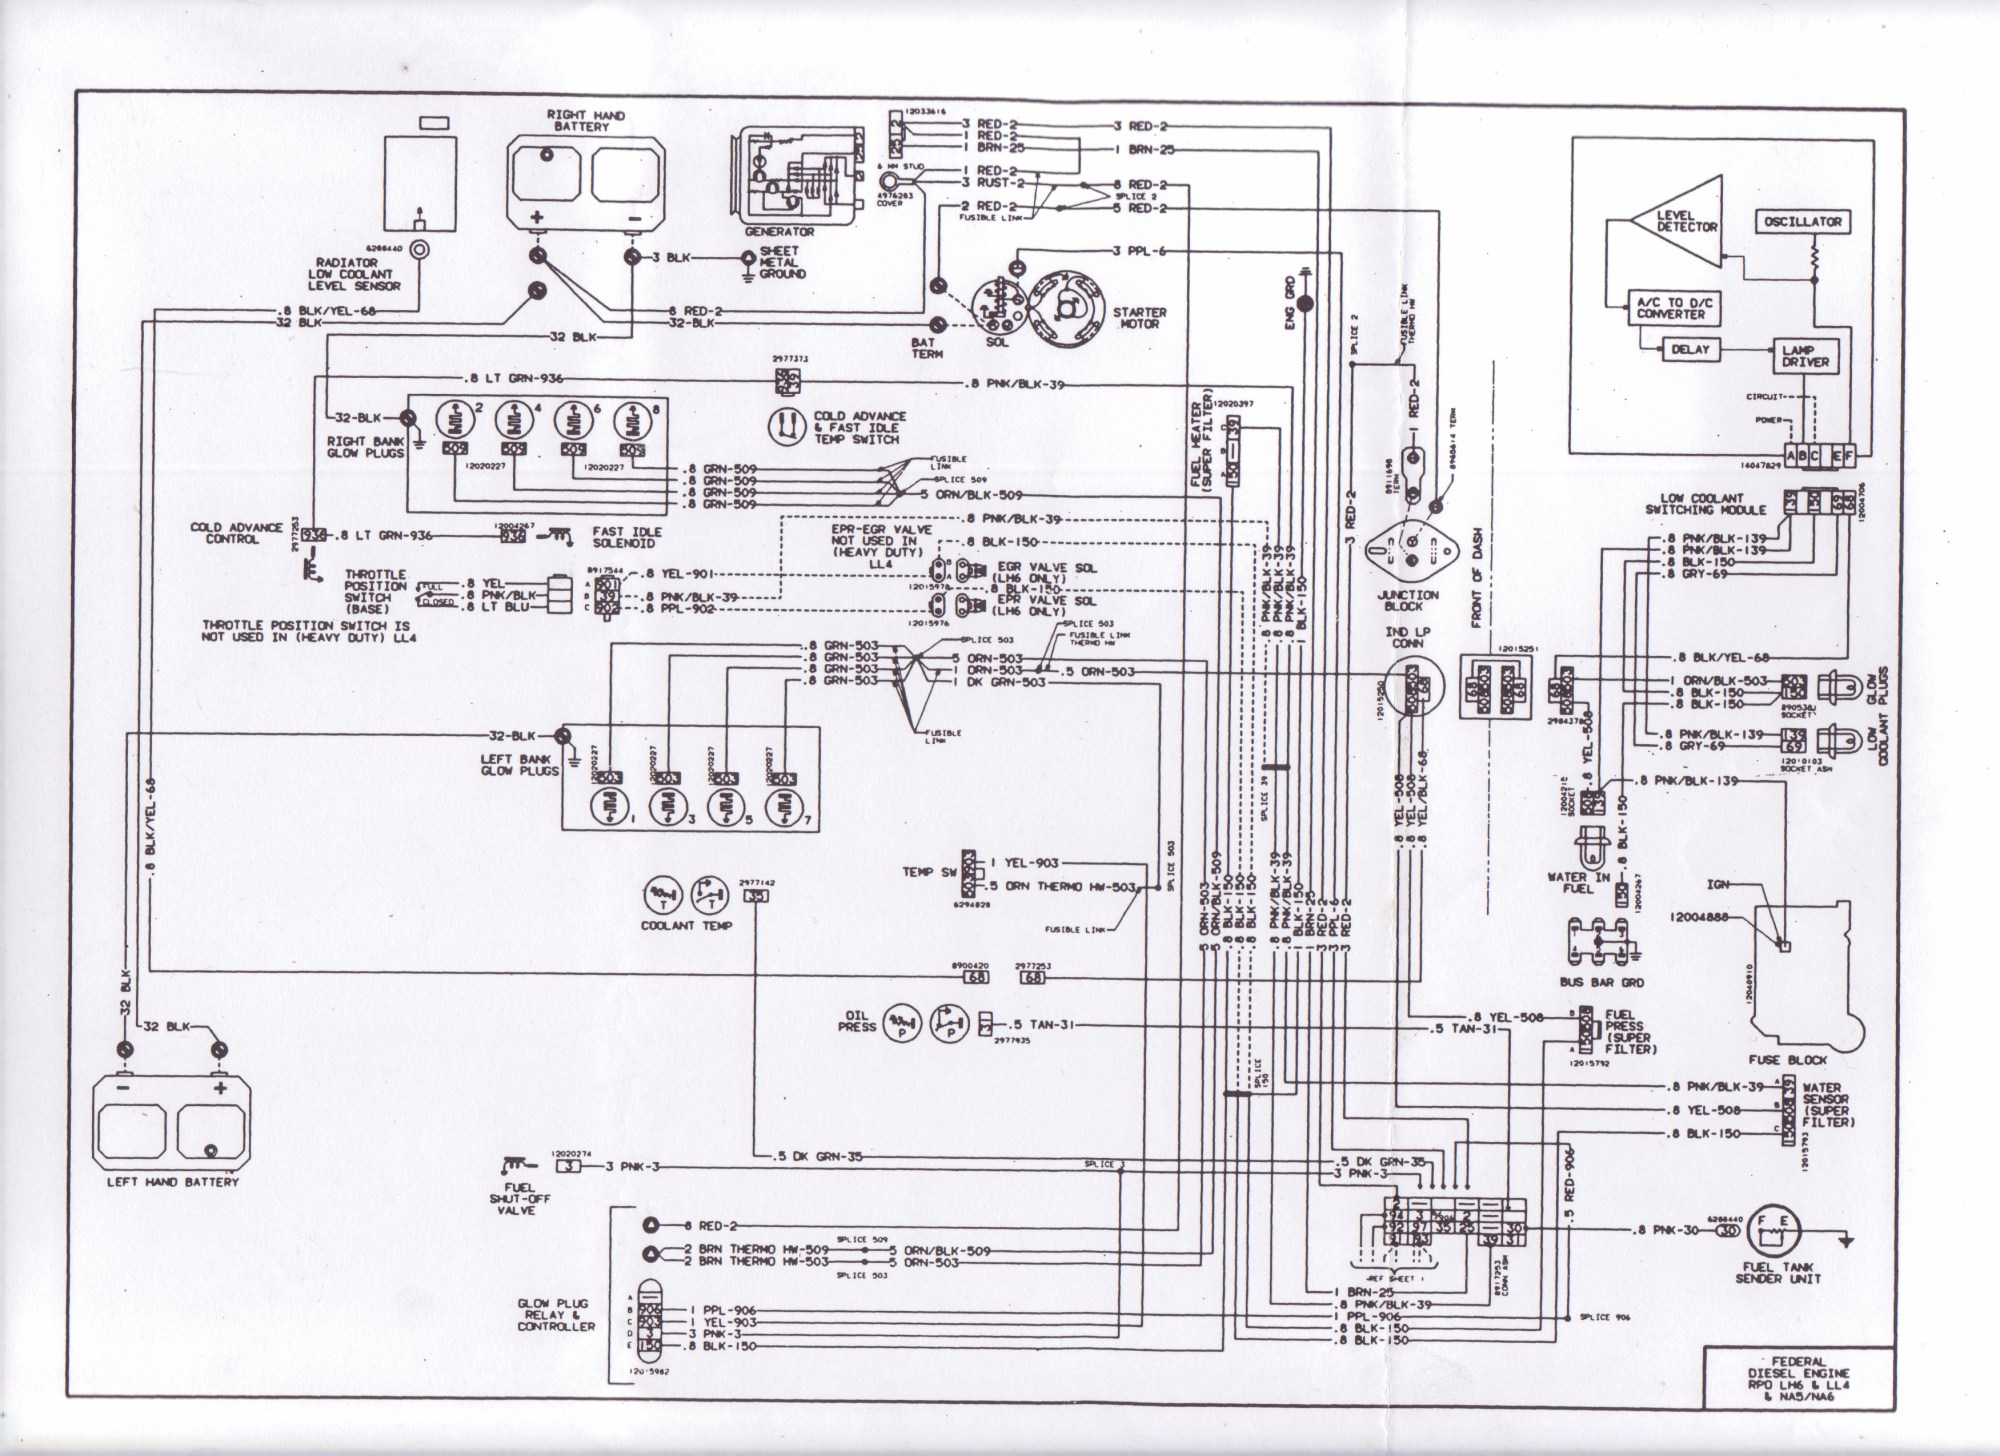 hight resolution of chevy 2 5 wiring schematic wiring diagram page 2 5 chevy motor wiring diagram source chevy 2 5 engine